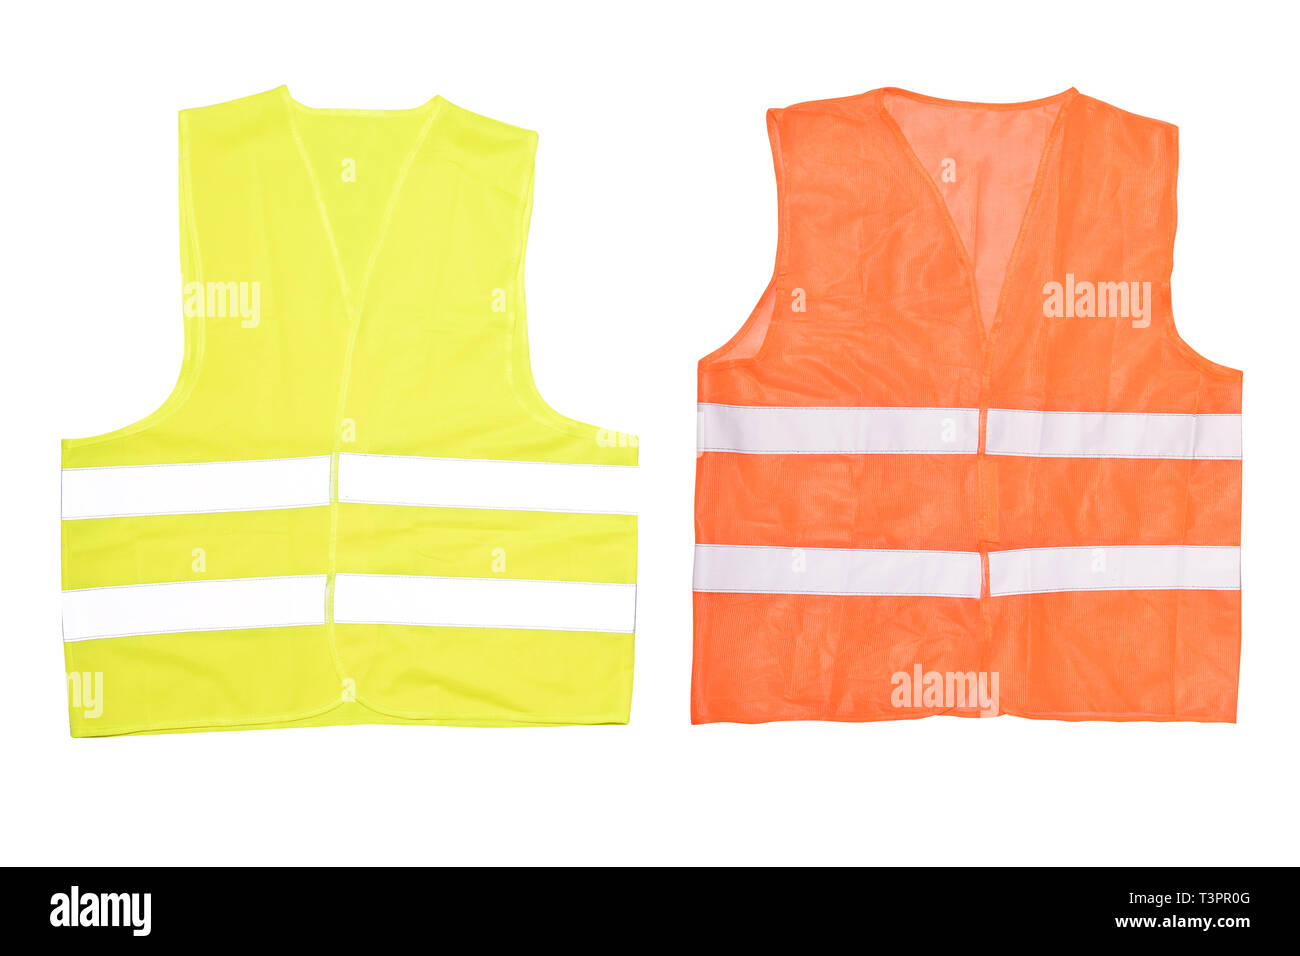 Safety orange vest isolated on a white background. Road vest for safe work.  Safety clothing with reflective stripes. Front side. - Stock Image